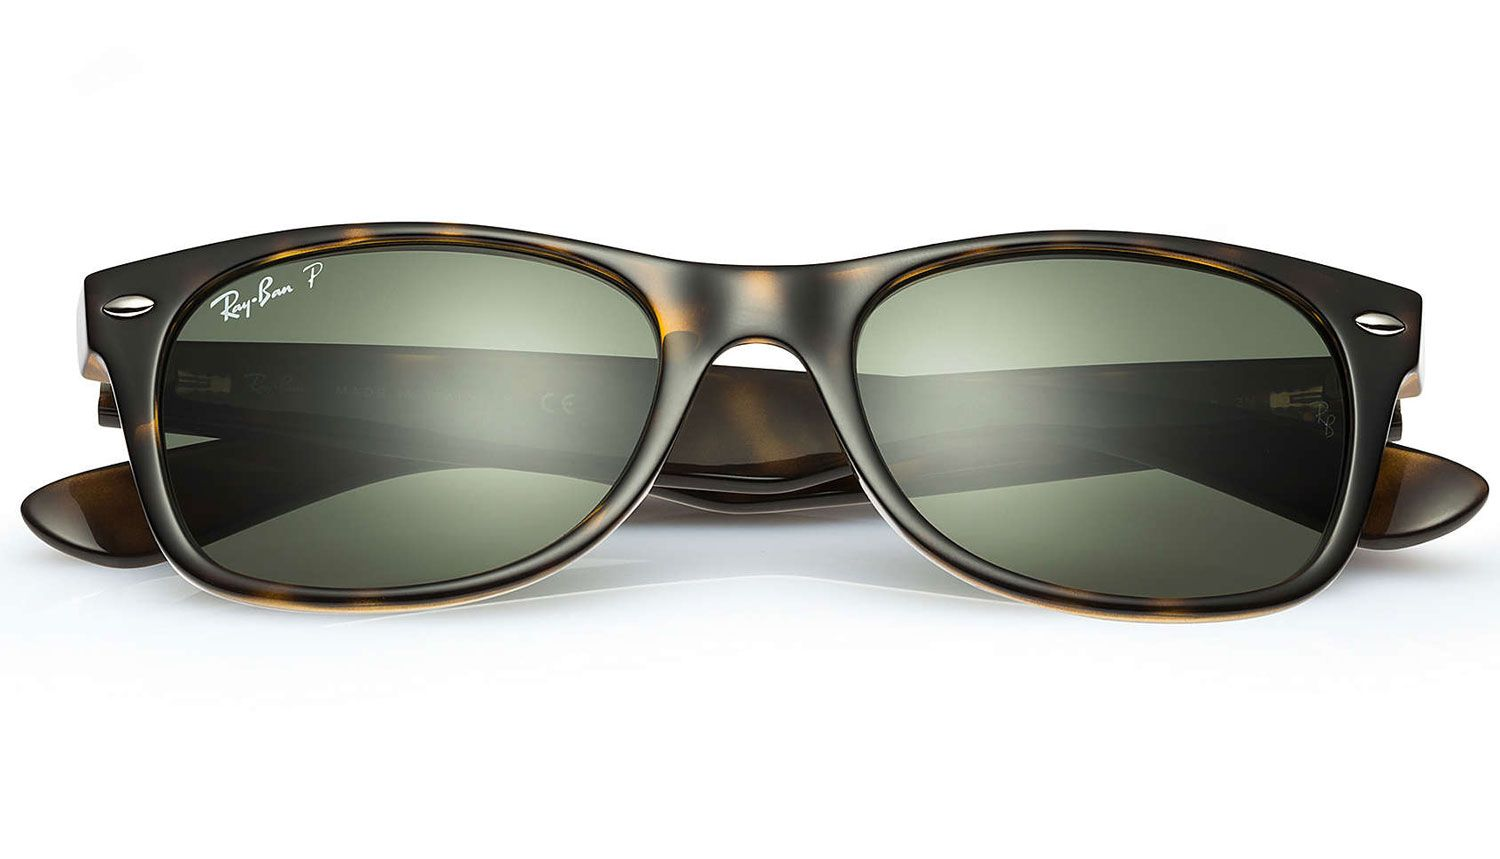 0f9b28873a ... Polarized New Wayfarer Classic Tortoise Unisex Sunglasses - RB2132 902  58 52. Ray-Ban RB2132 902 58 52-18 - 1